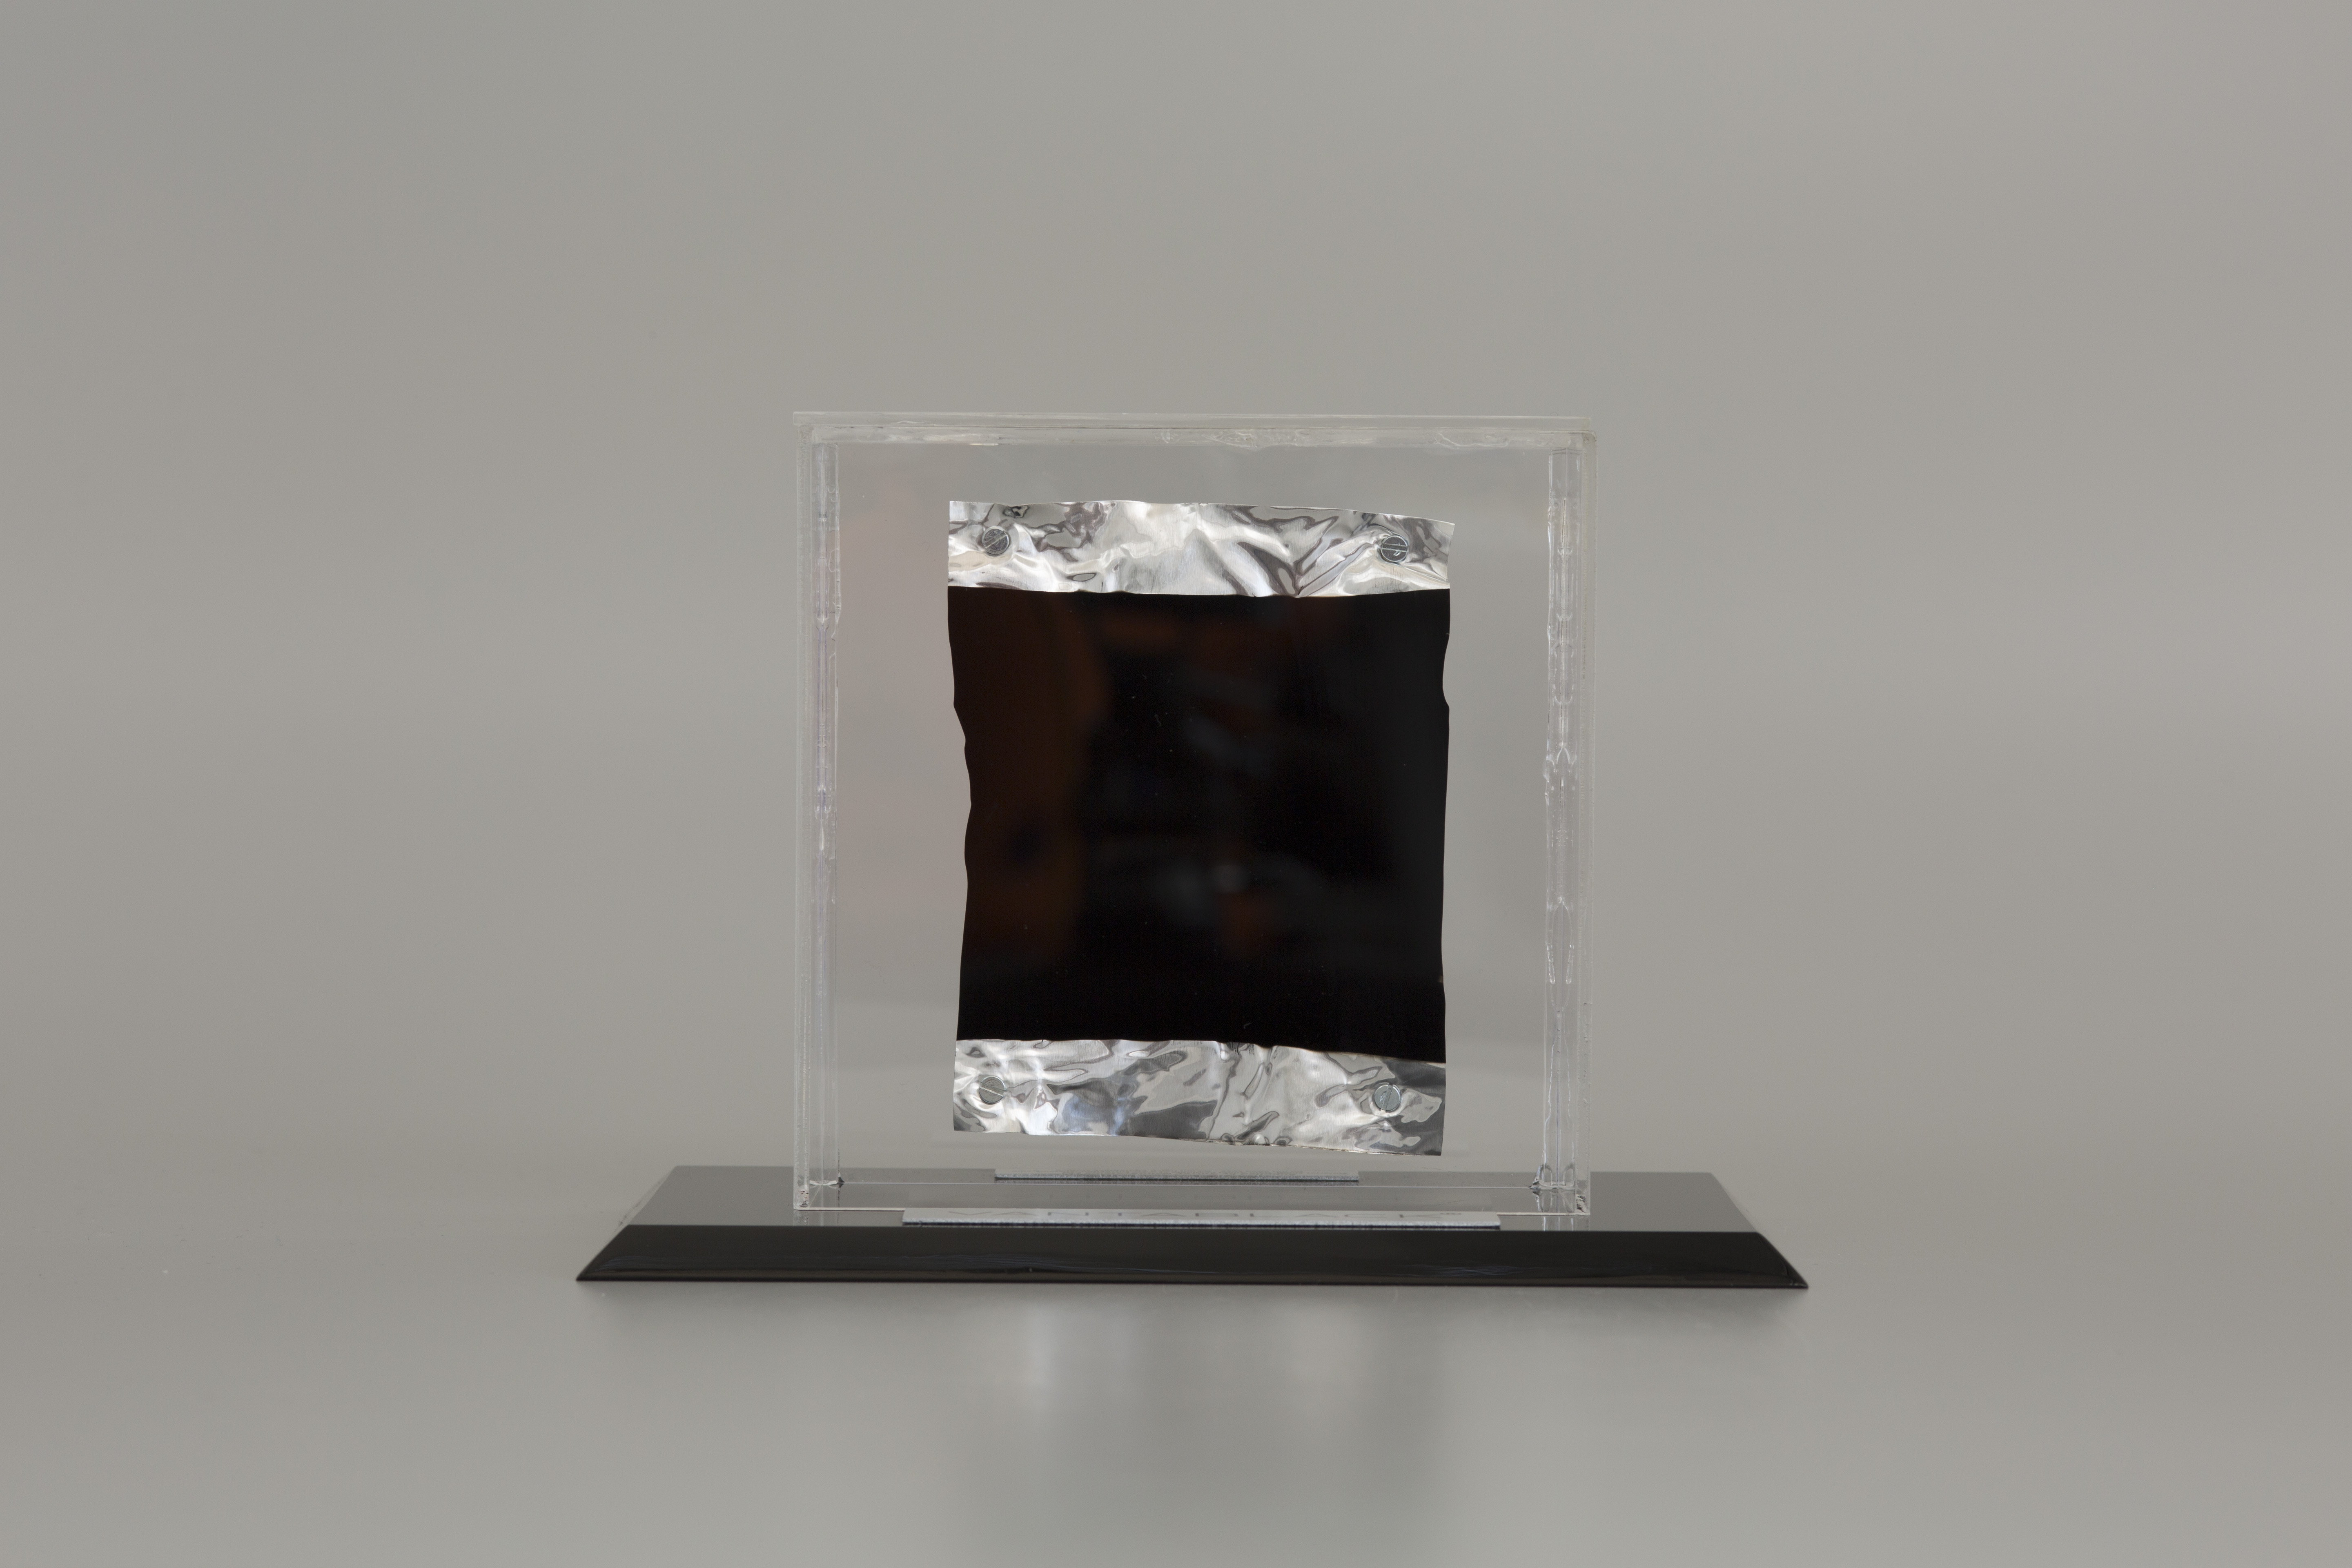 This photograph shows a piece of aluminum foil with a black square on it. The foil is inside a block of glass with a pedestal.